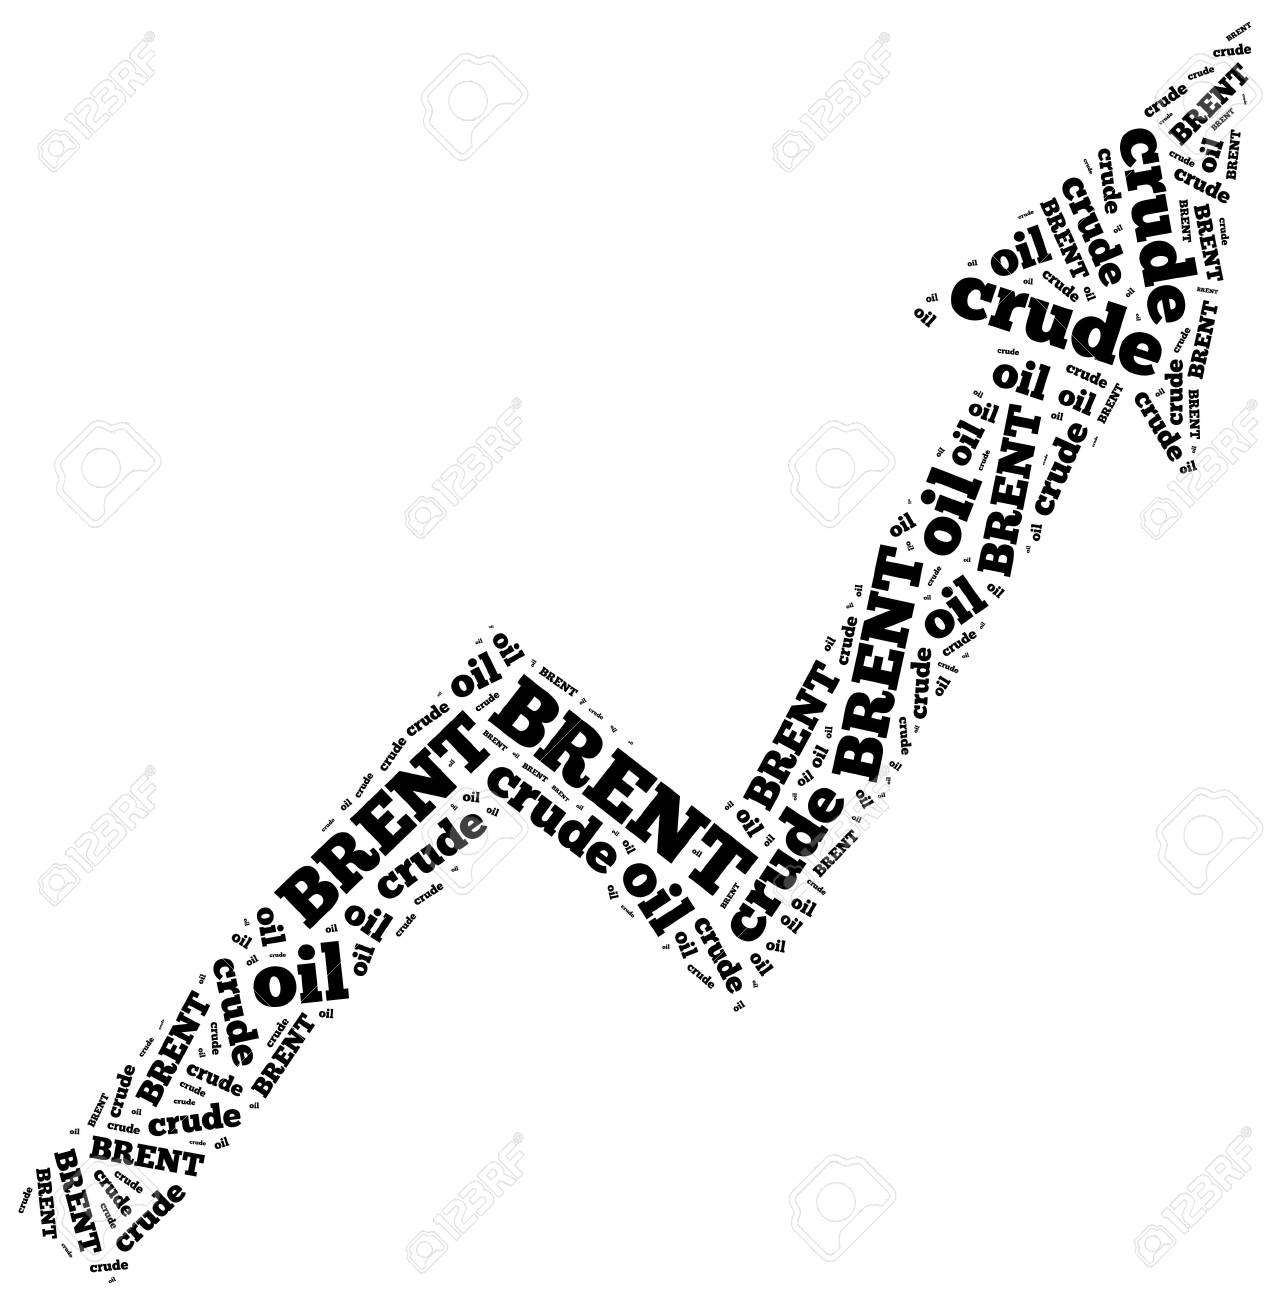 Brent crude oil commodity price growth word cloud illustration brent crude oil commodity price growth word cloud illustration stock illustration 36560432 biocorpaavc Image collections